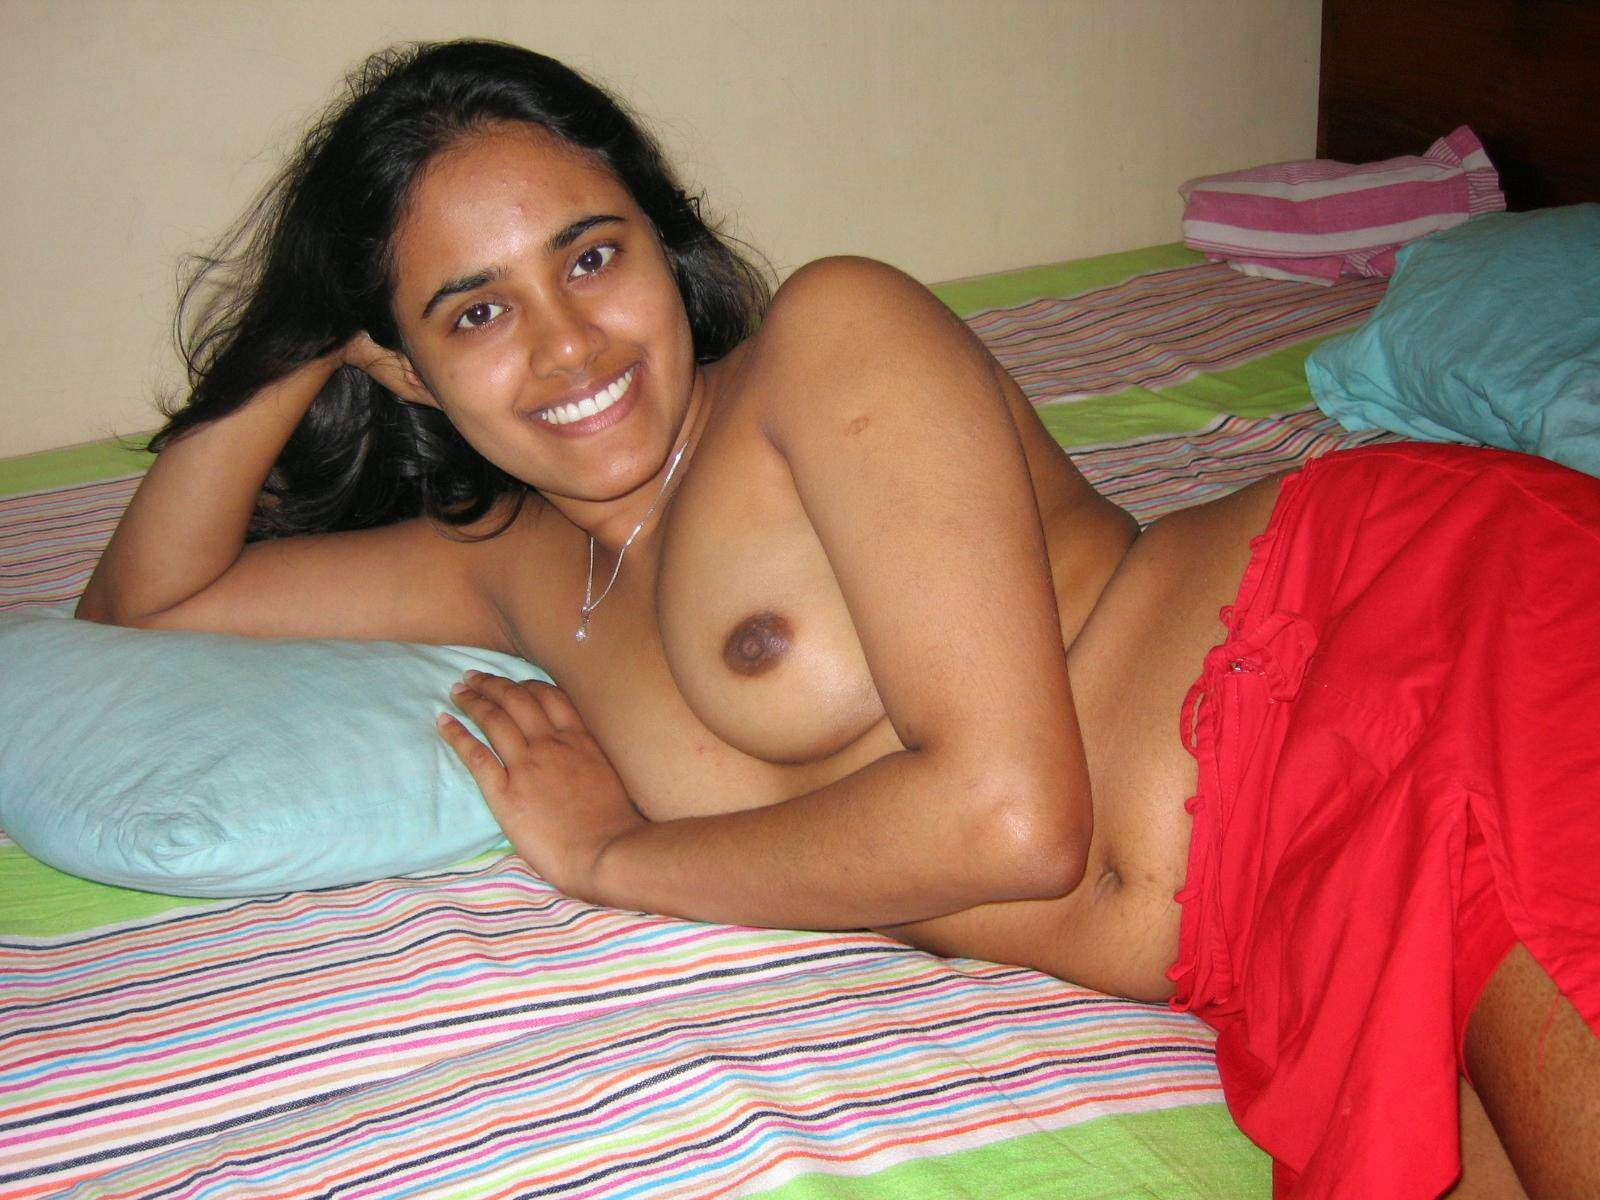 Srilankan naked photos think